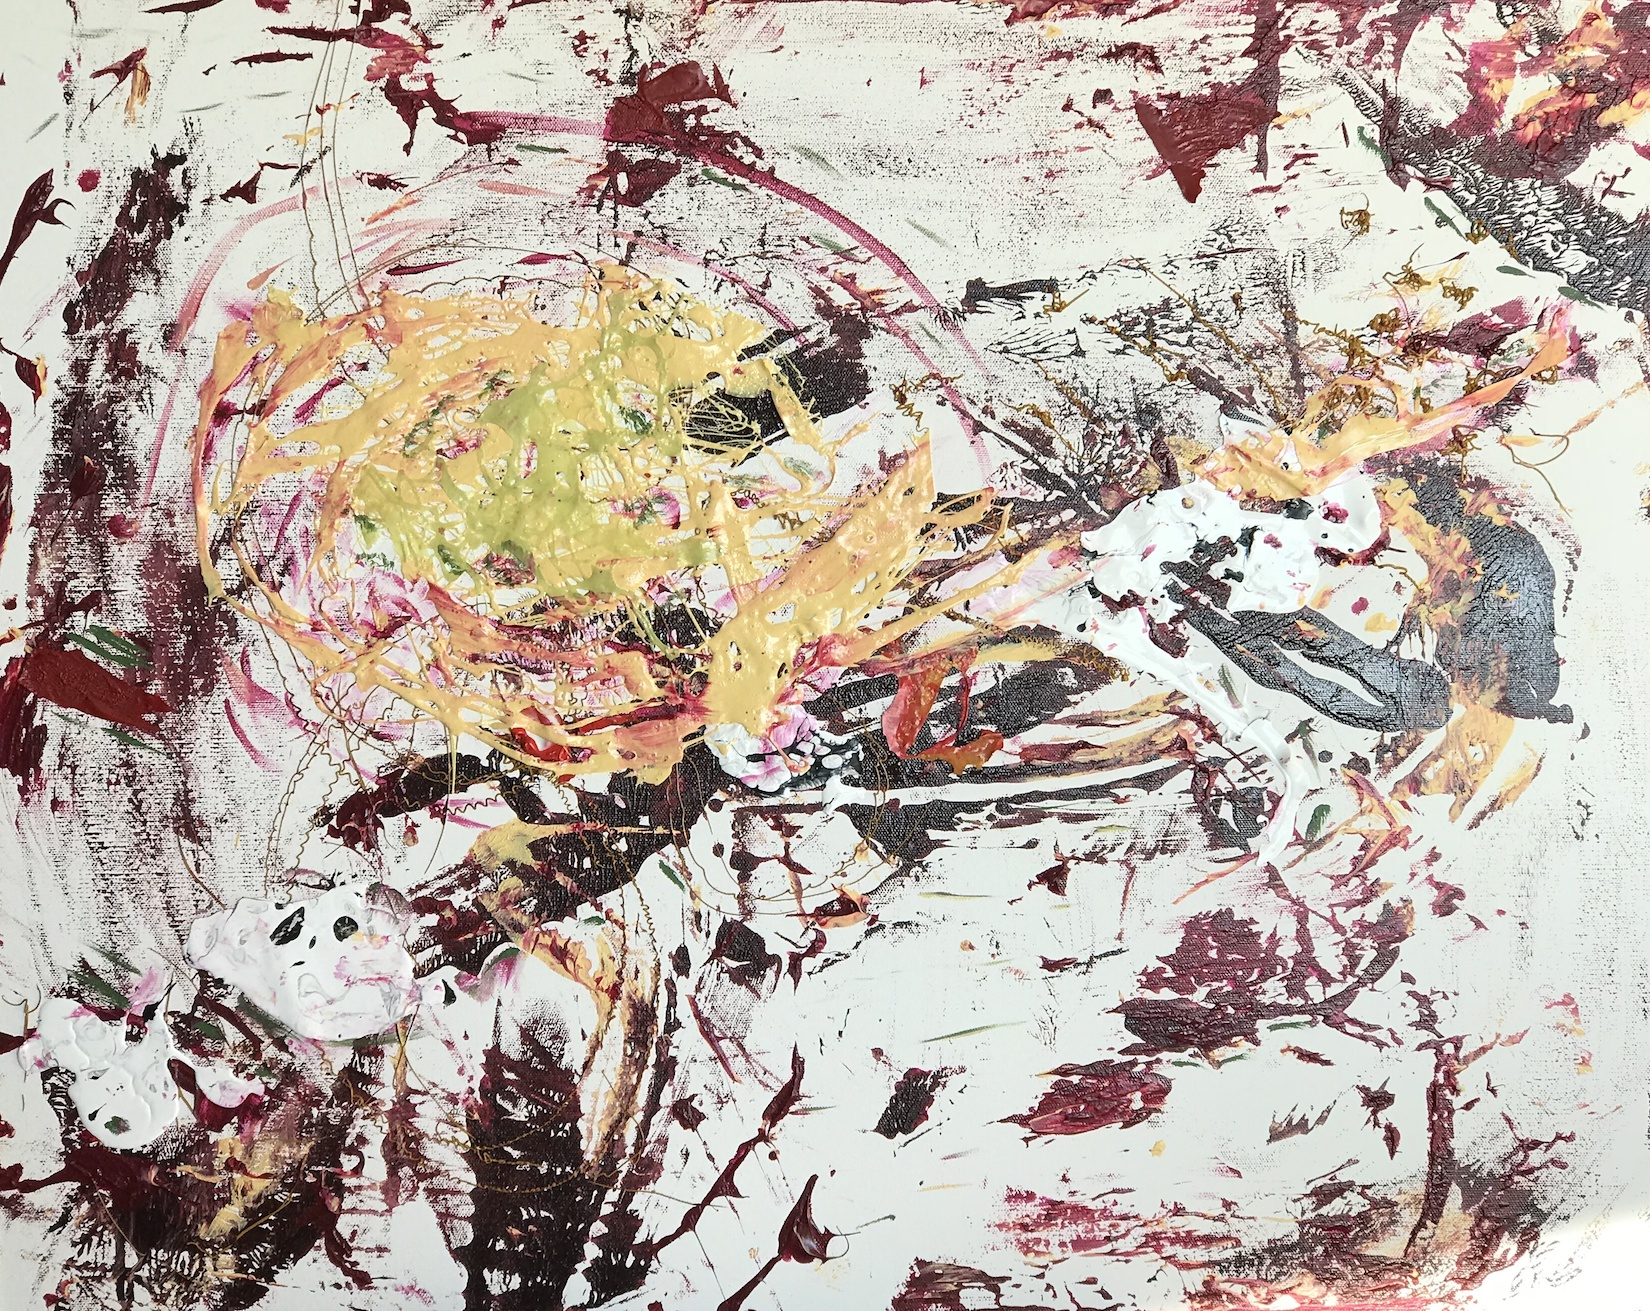 Sheila Cahill - 'You Have to Break Some Eggs...' - 24 x 30 - Acrylic on canvas - 2018 - $900.jpg